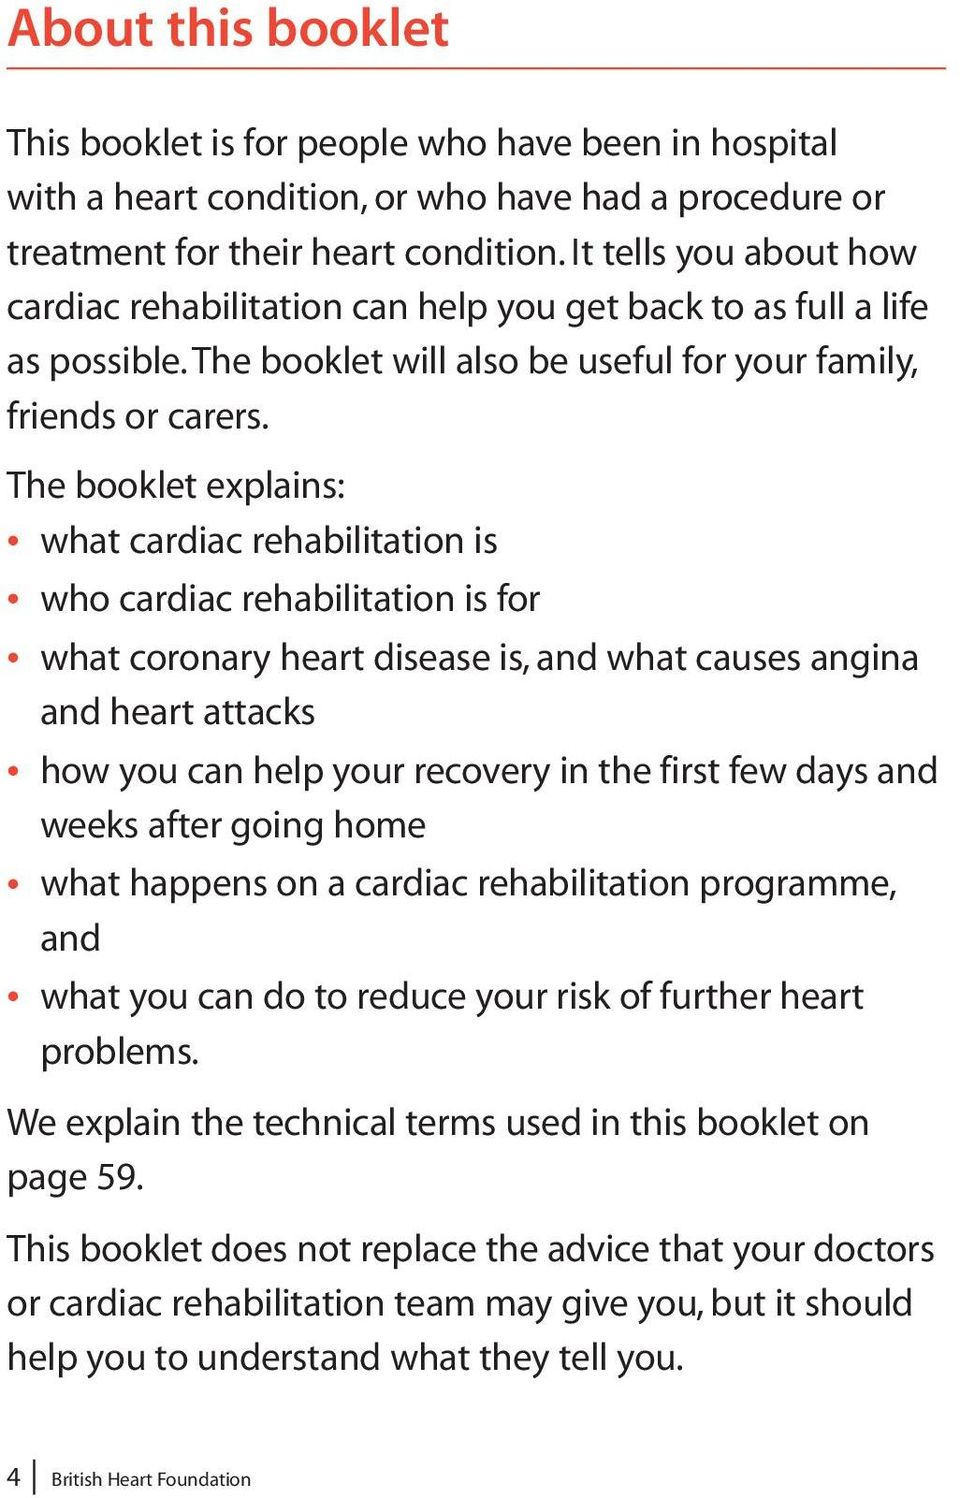 The booklet explains: what cardiac rehabilitation is who cardiac rehabilitation is for what coronary heart disease is, and what causes angina and heart attacks how you can help your recovery in the